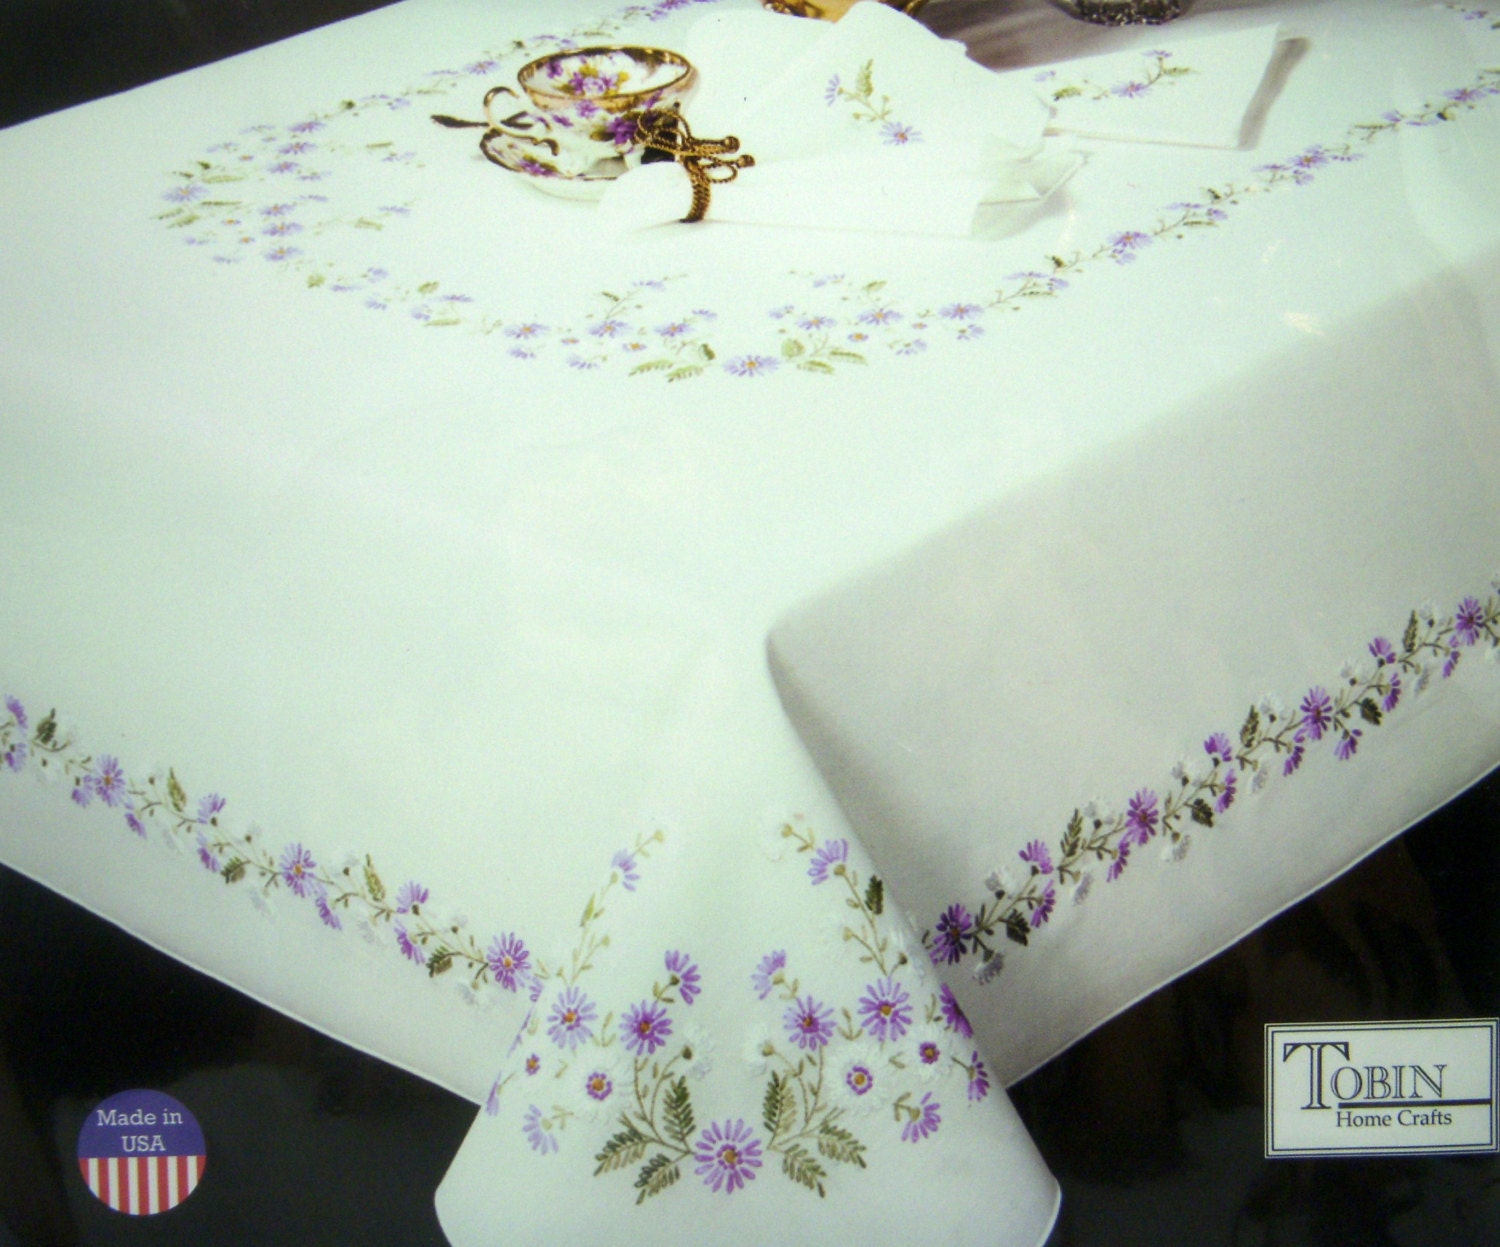 CROSS STITCH Stamped Tablecloth Rhapsody Embroidery by CLGifts